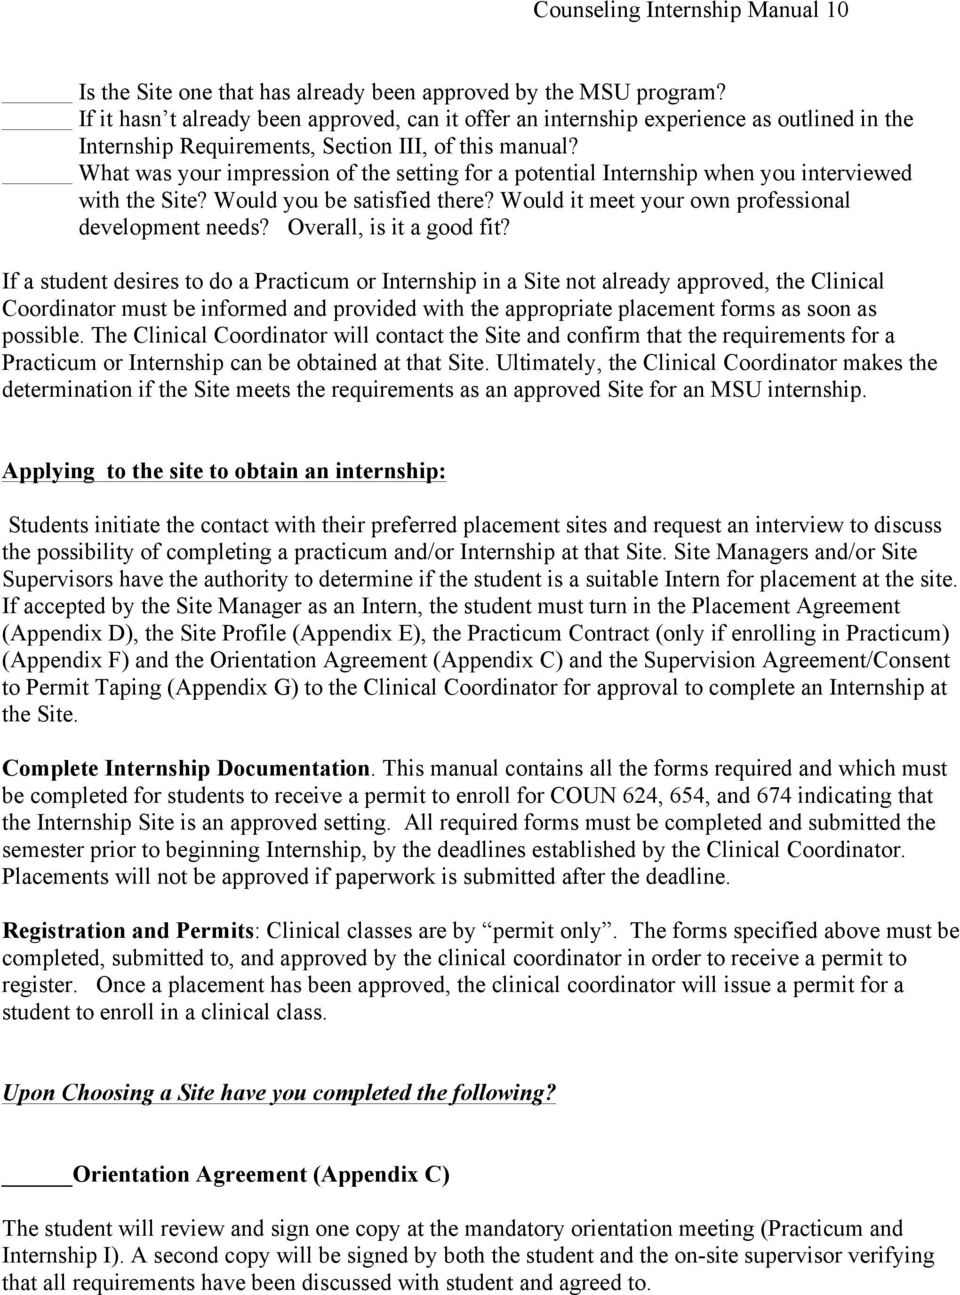 What was your impression of the setting for a potential Internship when you interviewed with the Site? Would you be satisfied there? Would it meet your own professional development needs?